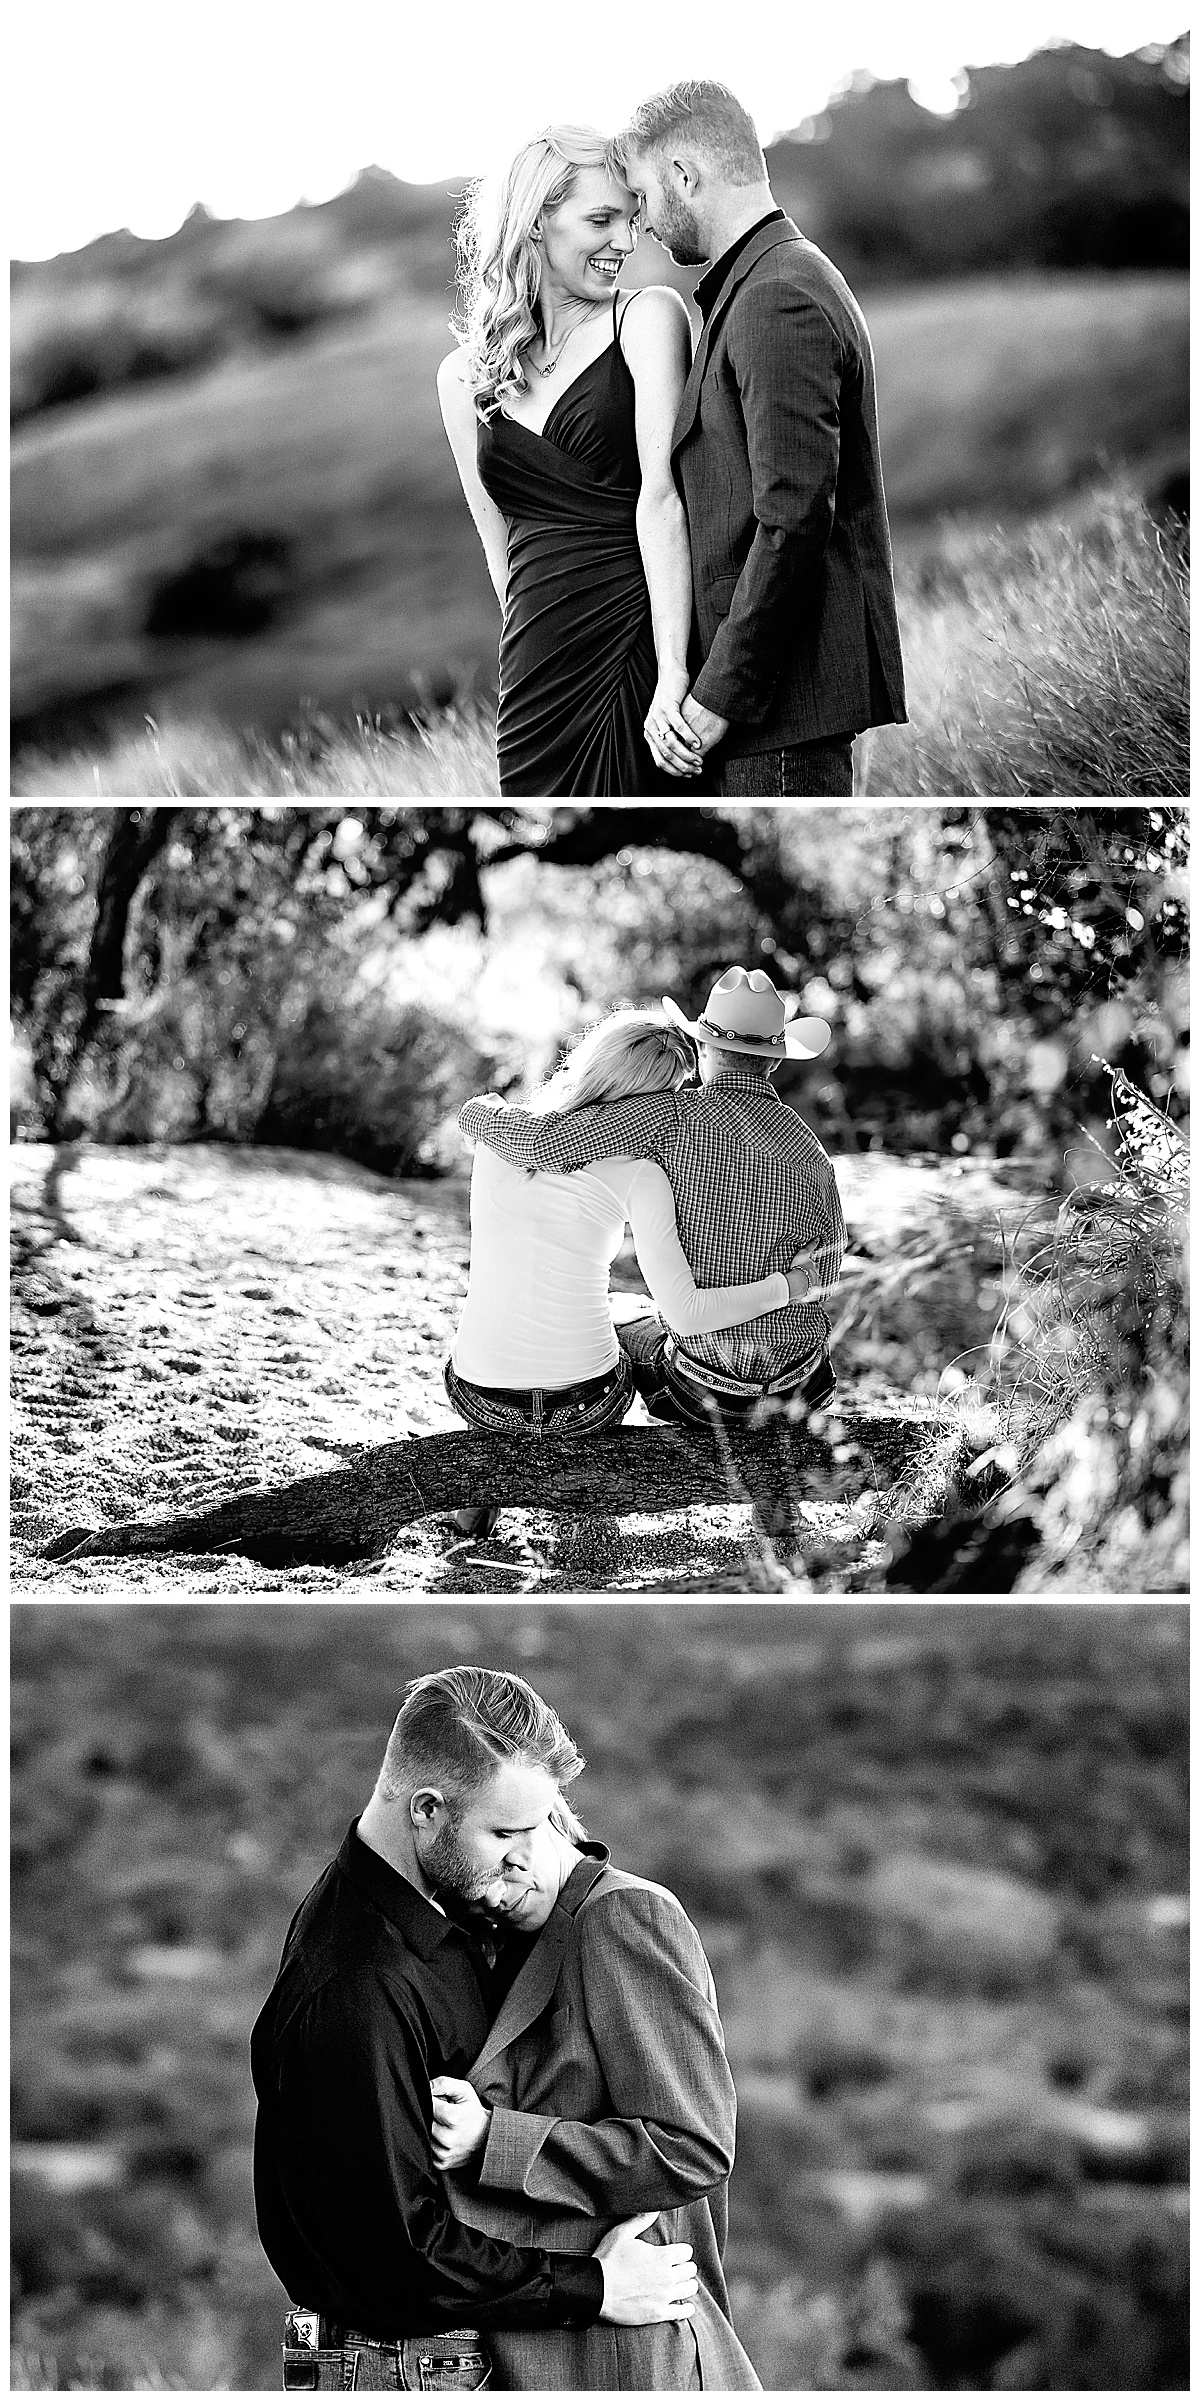 South-Texas-Wedding-Photographer-Engagement-Photos-Enchanted-Rock-Fredericksburg-Sunset-Couples-Carly-Barton-Photography_0005.jpg